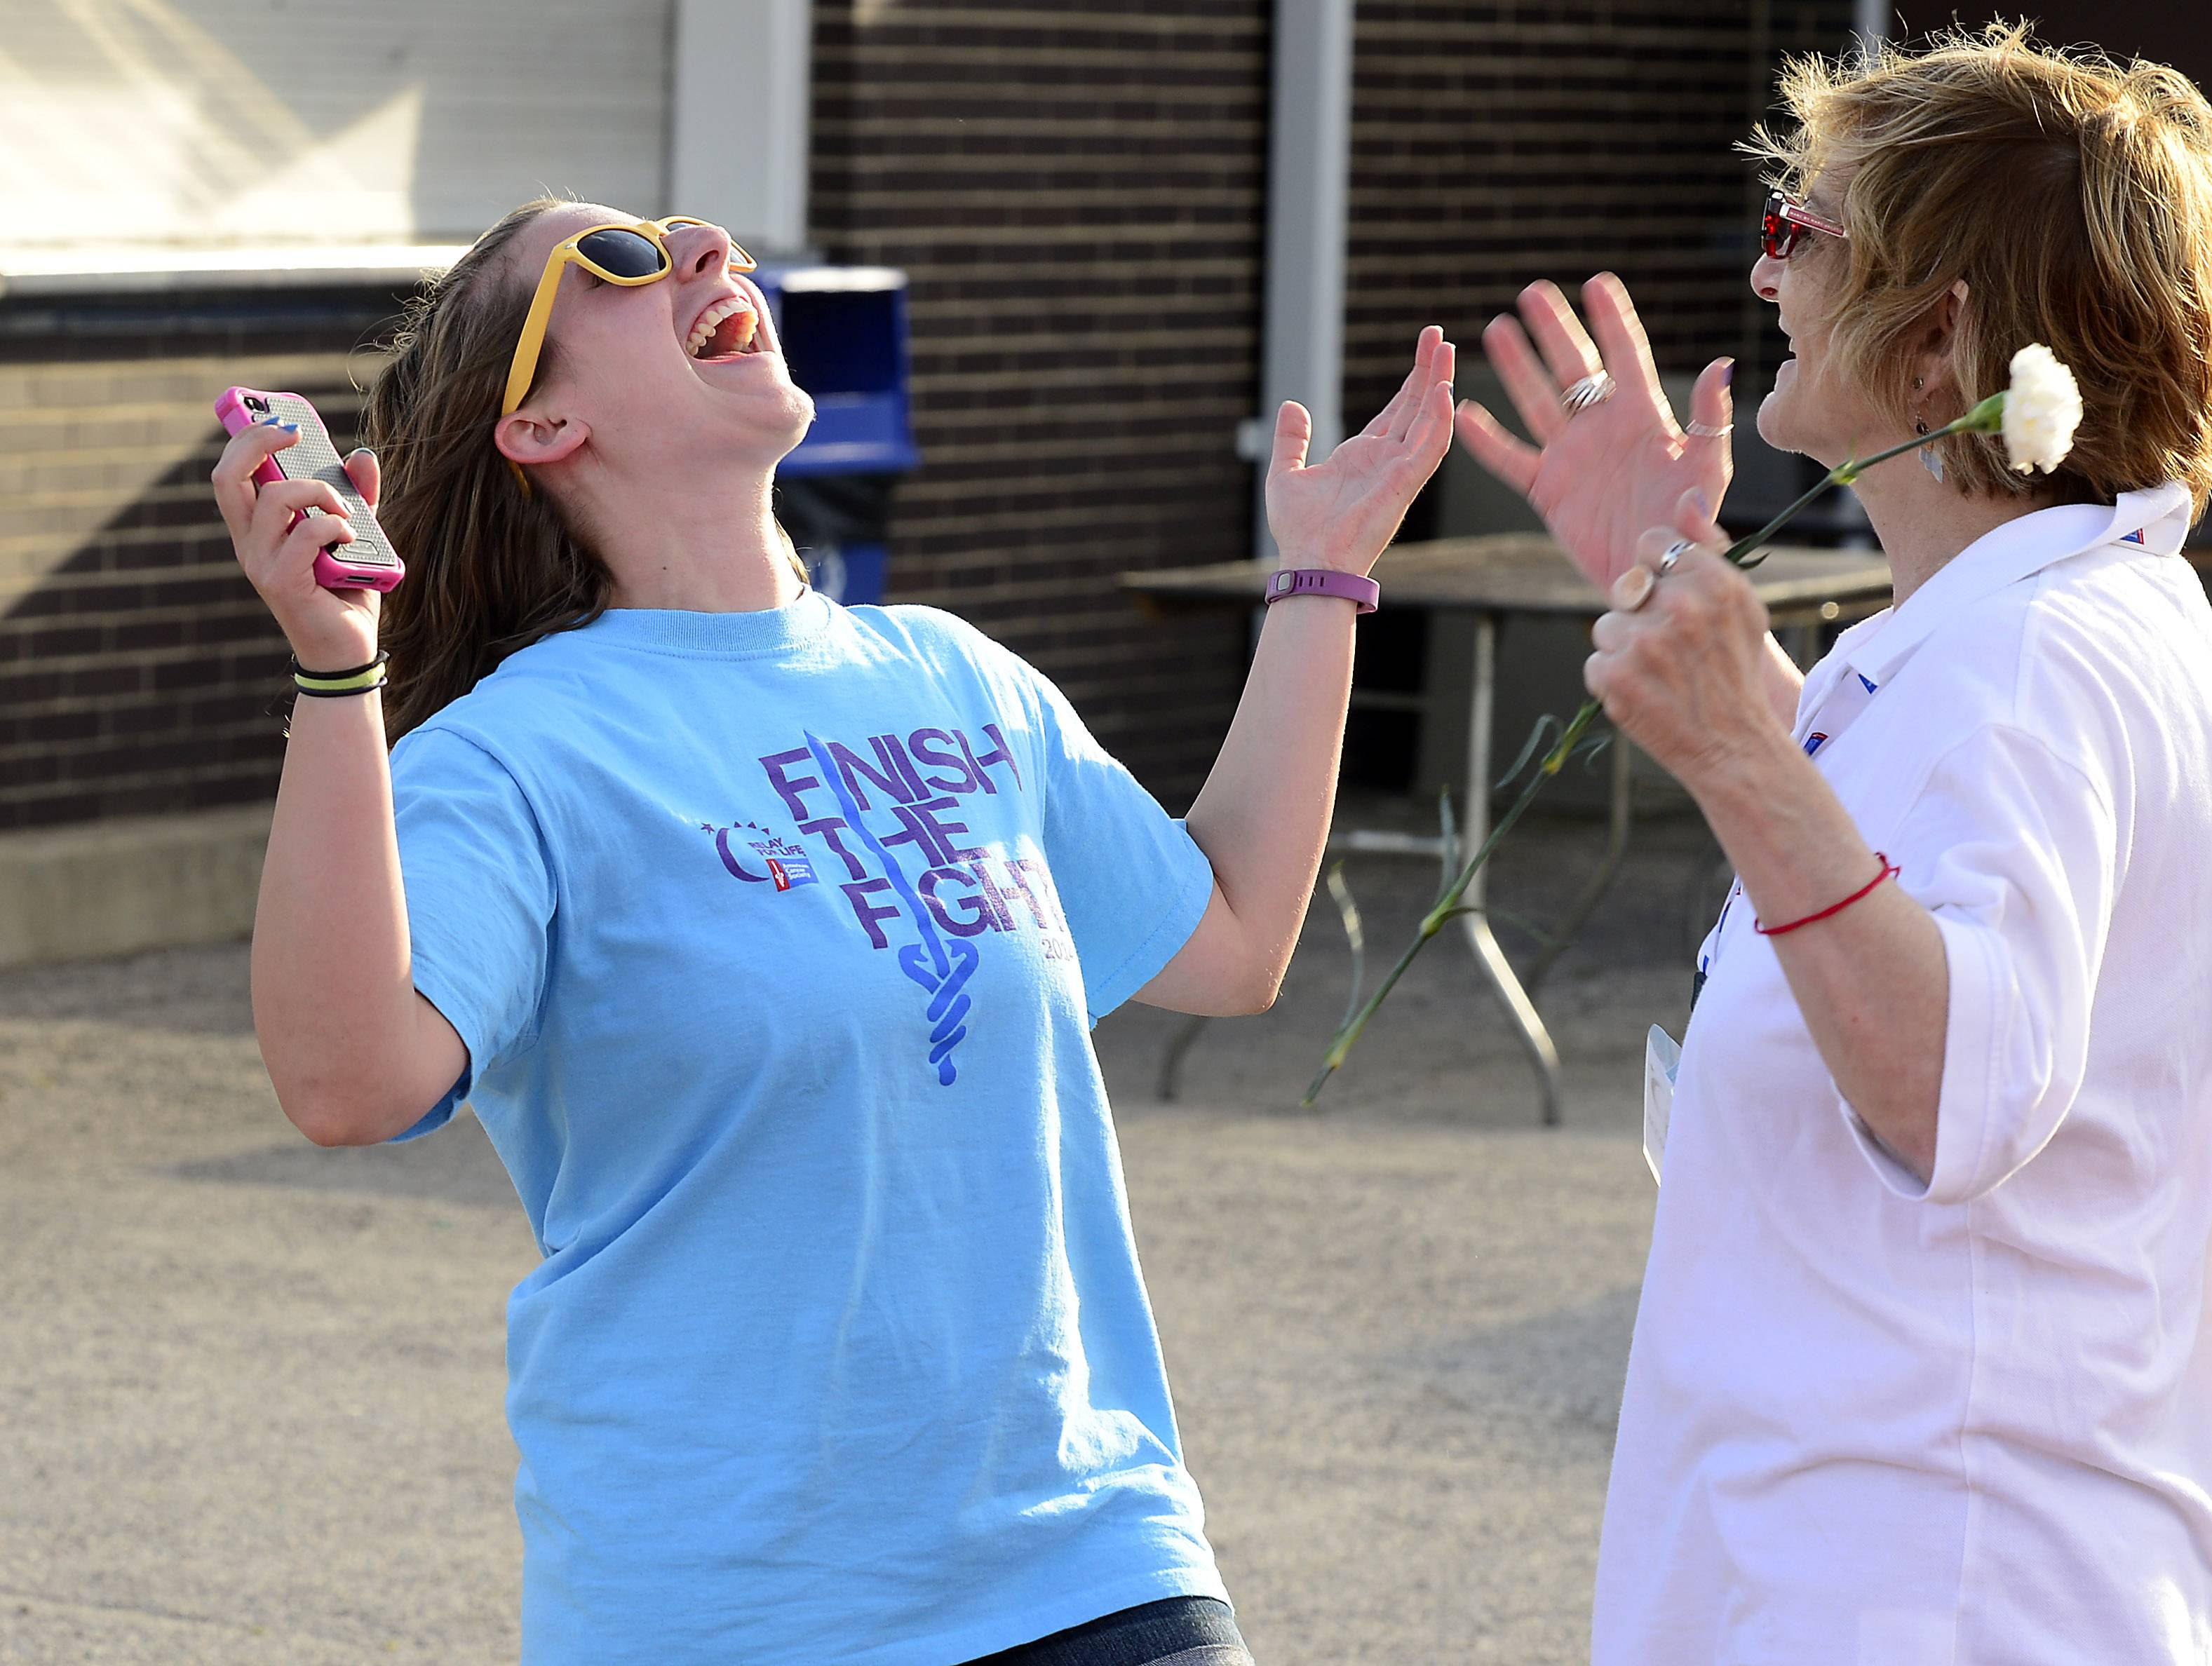 Volunteer Becca Urban, 24, of Arlington Heights, left, and staff personal for the American Cancer Society Susan Grossman, of Arlington Heights, come together to celebrate life at the annual Relay for Life against Cancer event at Hersey High School on Friday.